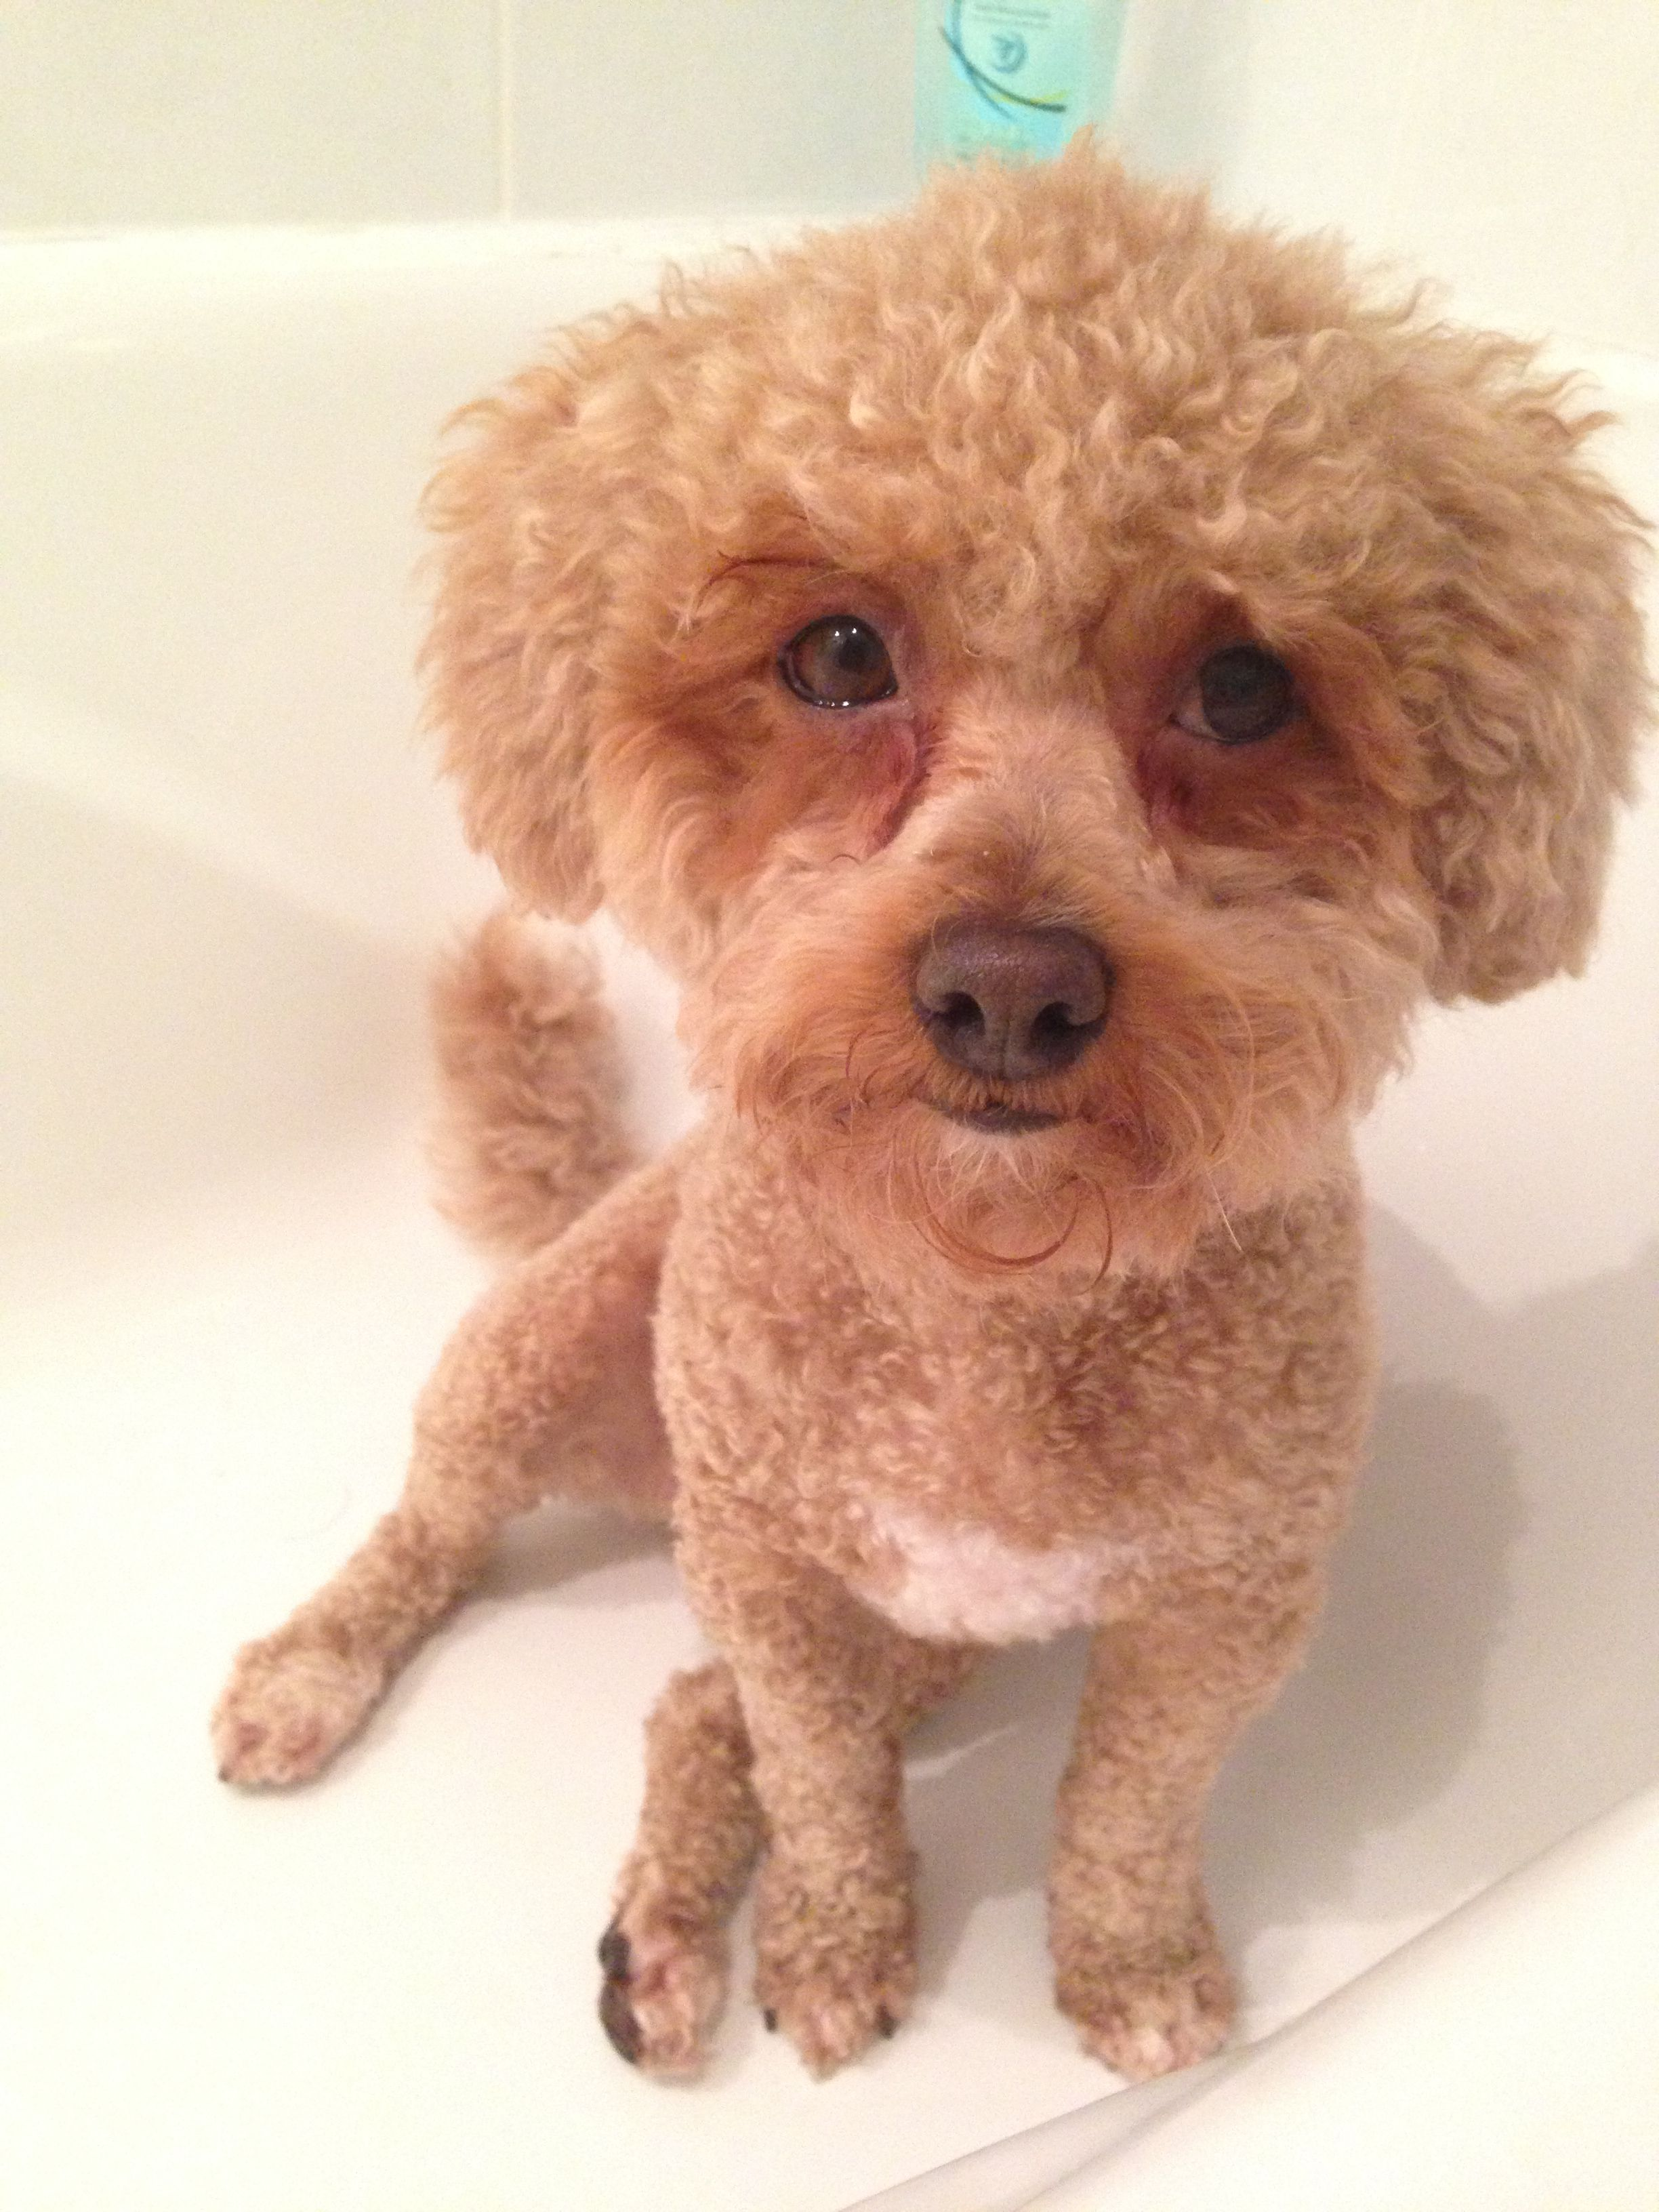 She Loves The Bath Bichon Poodle Cross Poodle Puppy Love Teddy